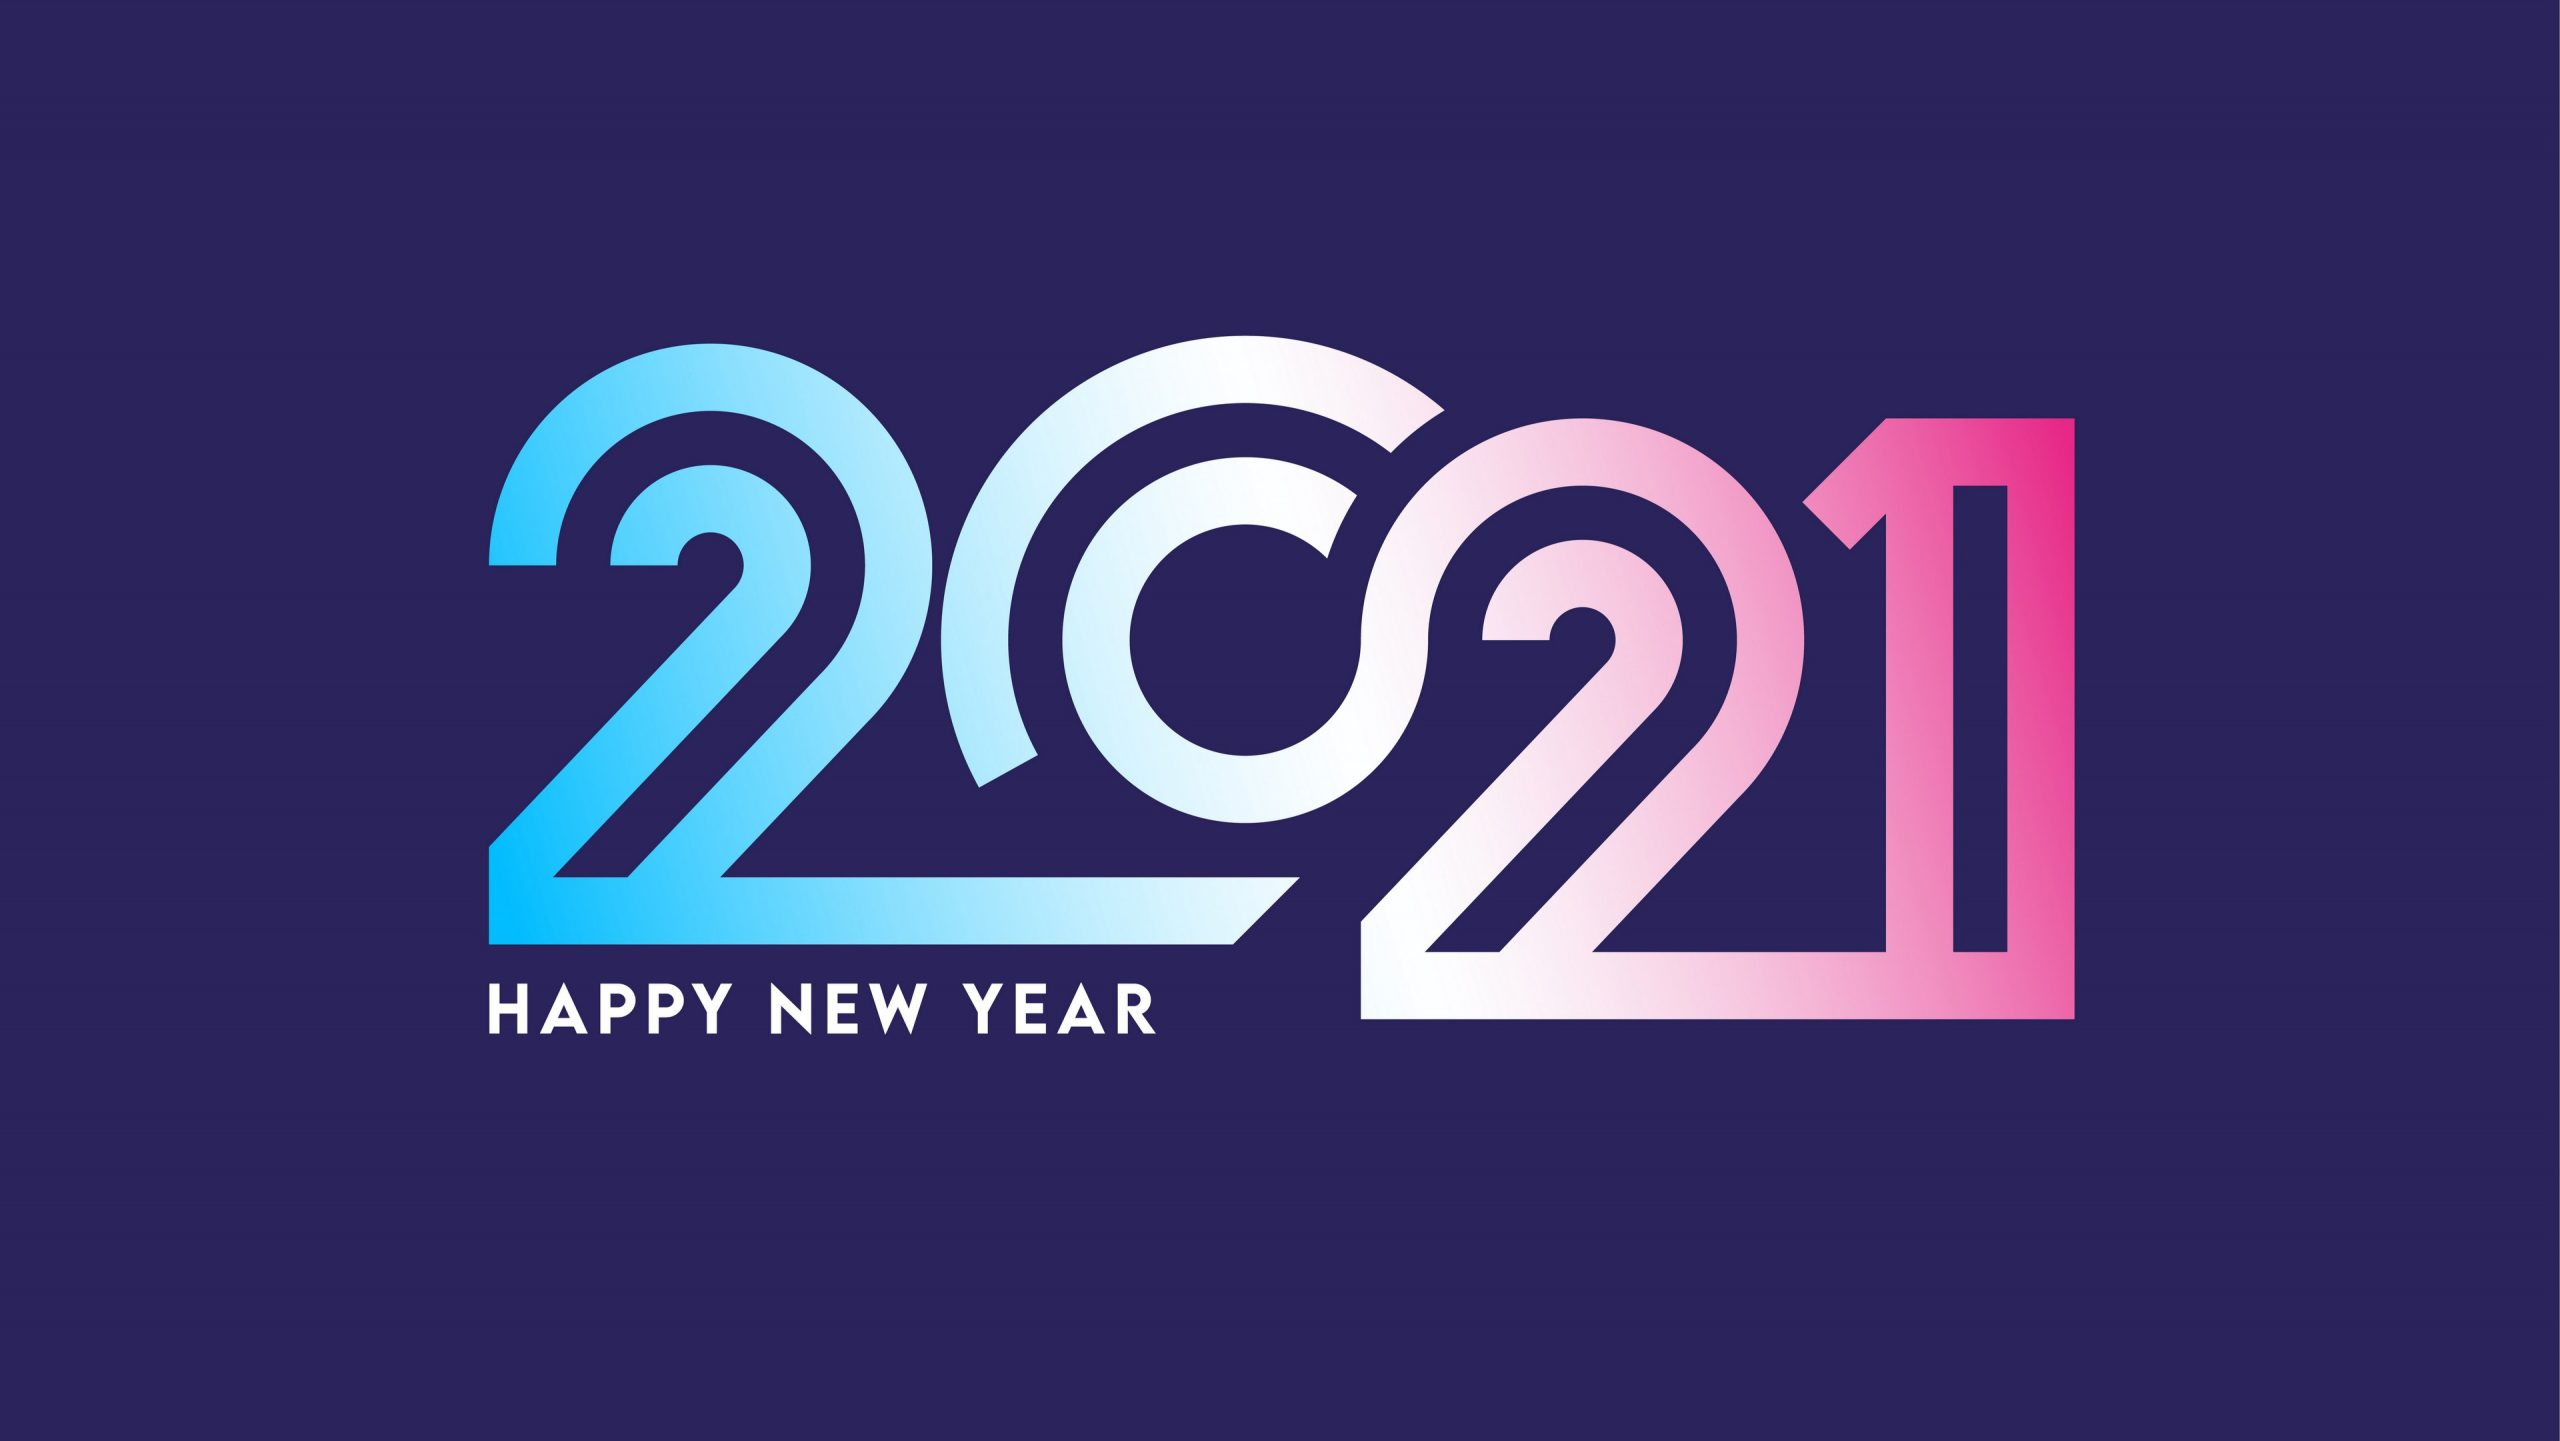 Download - Happy New Year 4k Images, HD Wallpapers